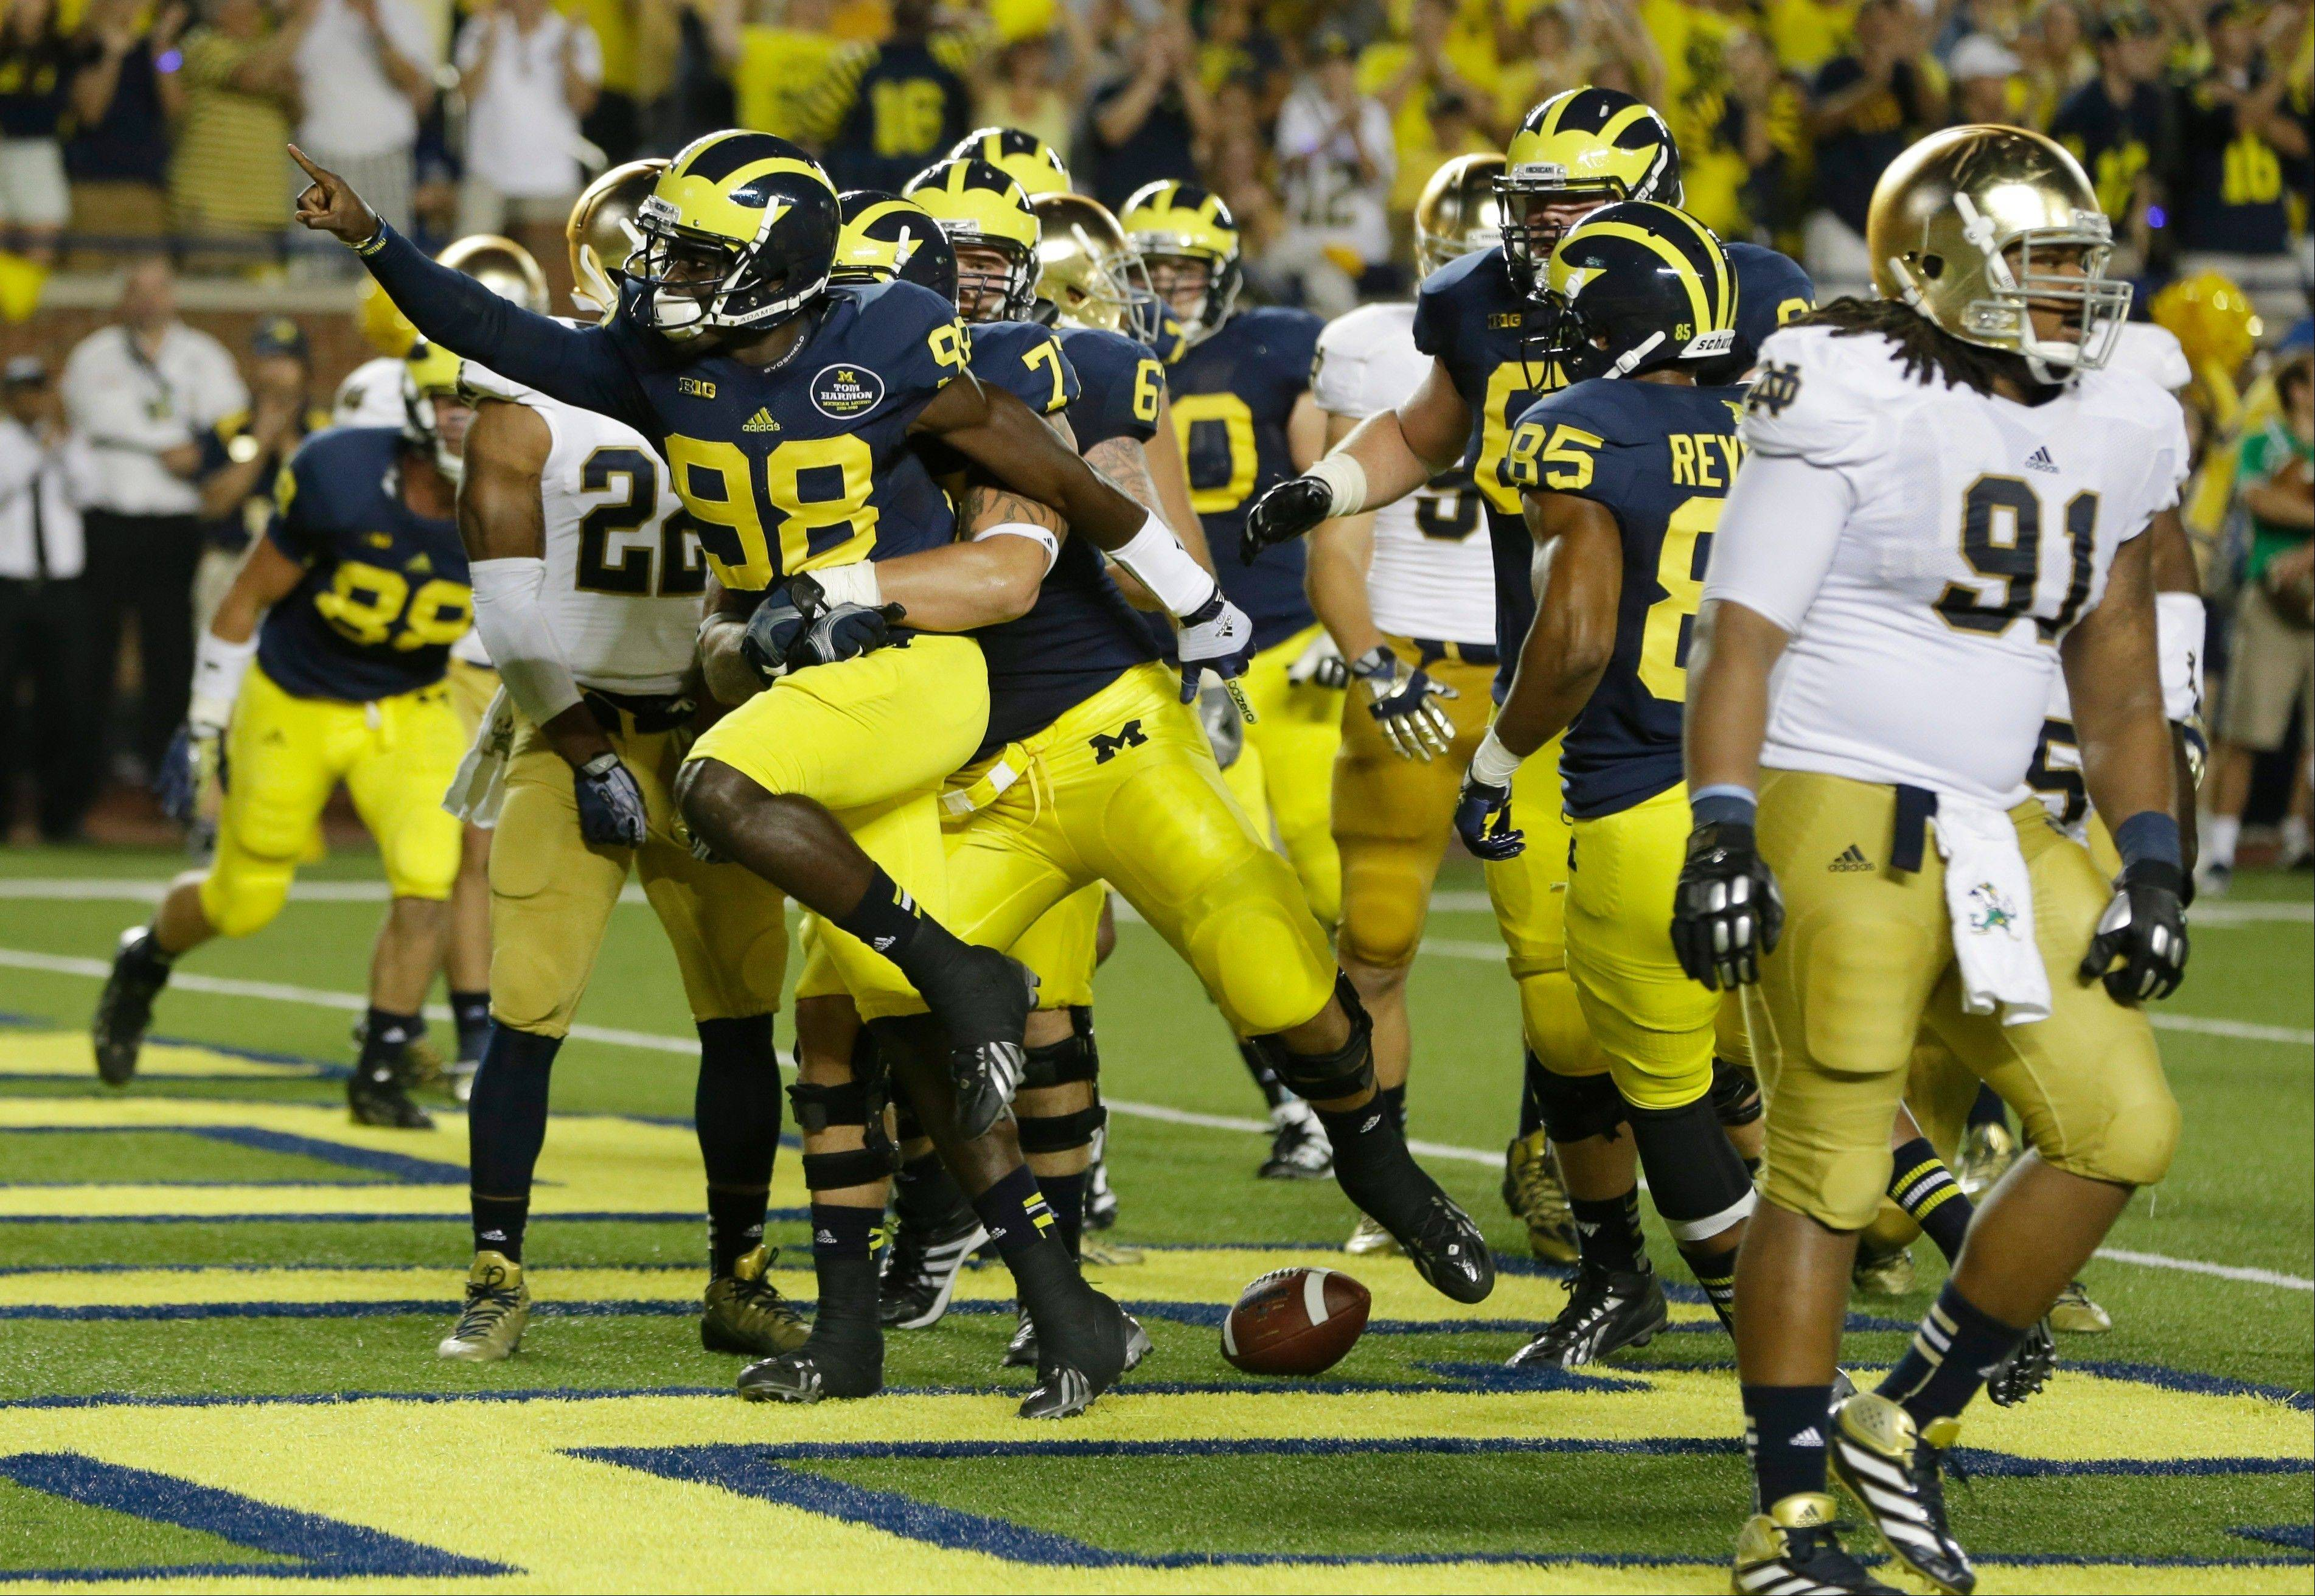 Michigan quarterback Devin Gardner (98) celebrates his touchdown during the second quarter of Saturday night's against Notre Dame in Ann Arbor, Mich.